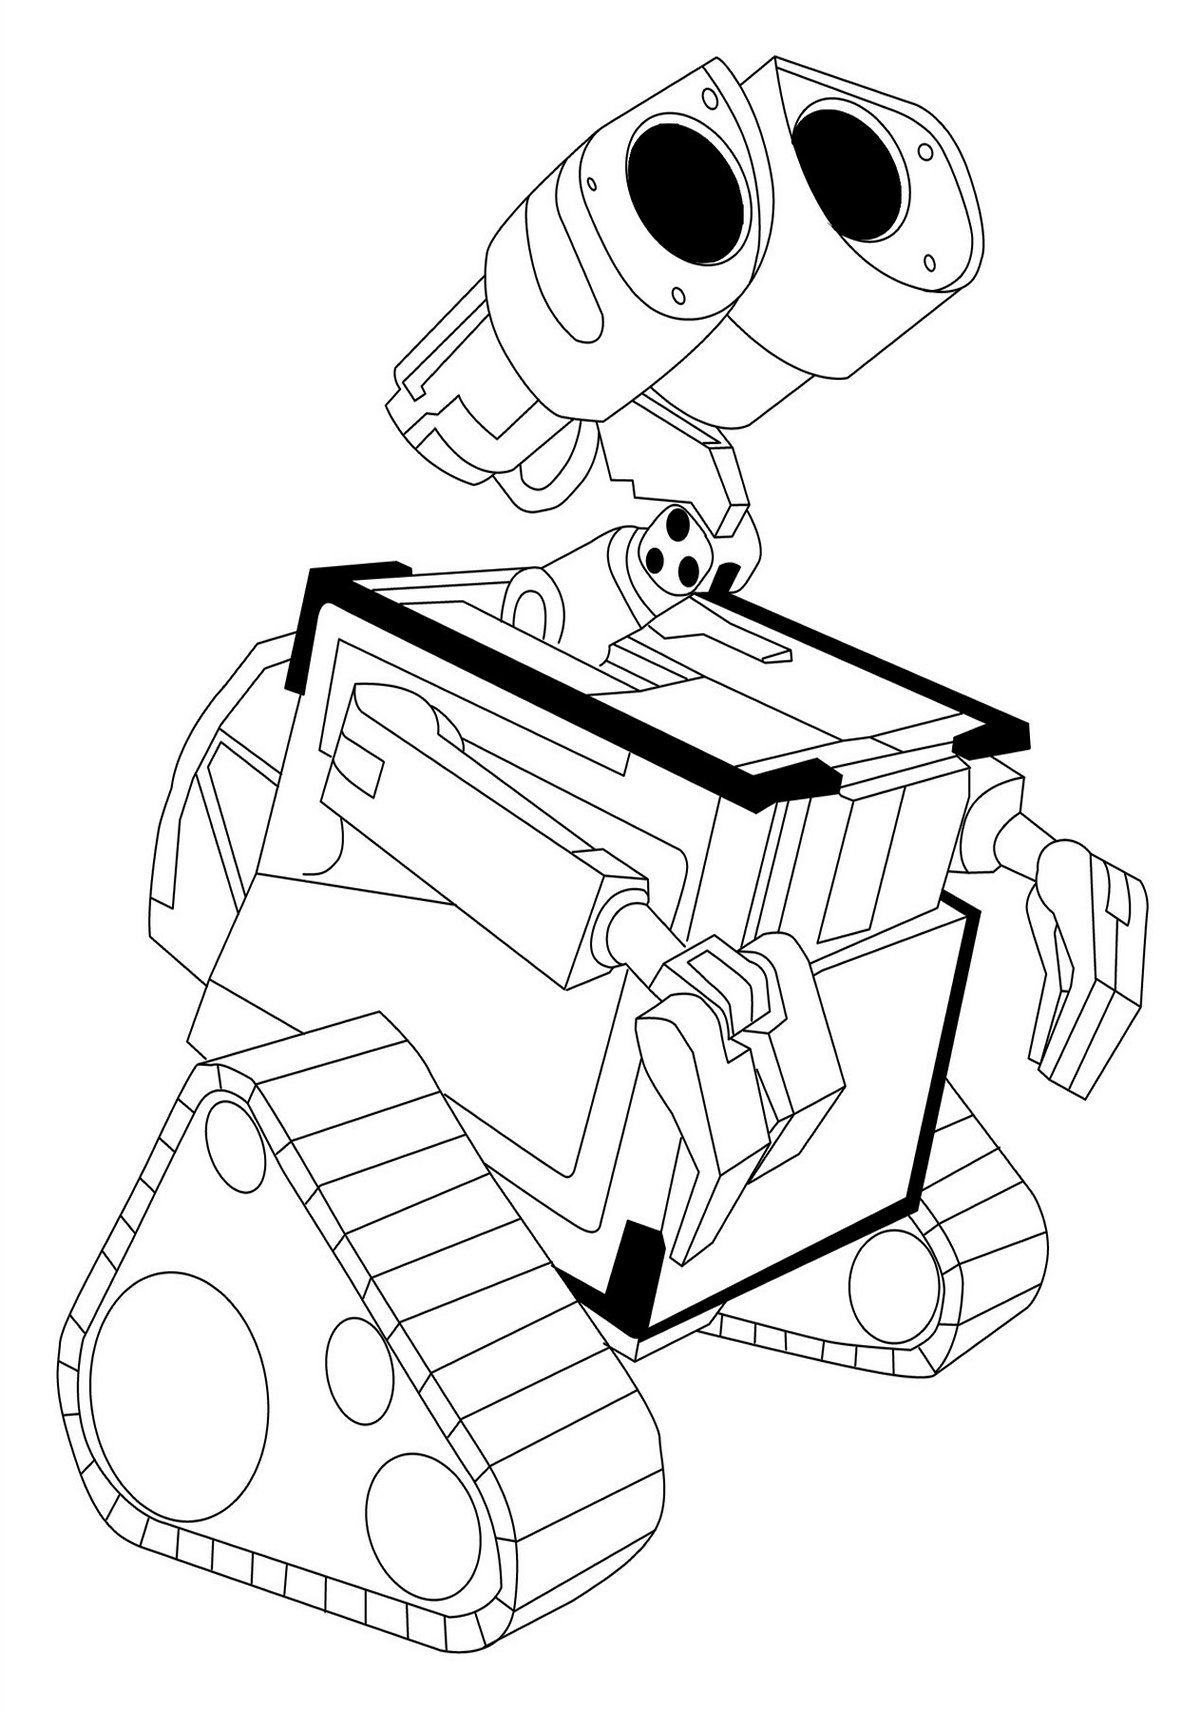 wall e coloring pages - wall e coloring